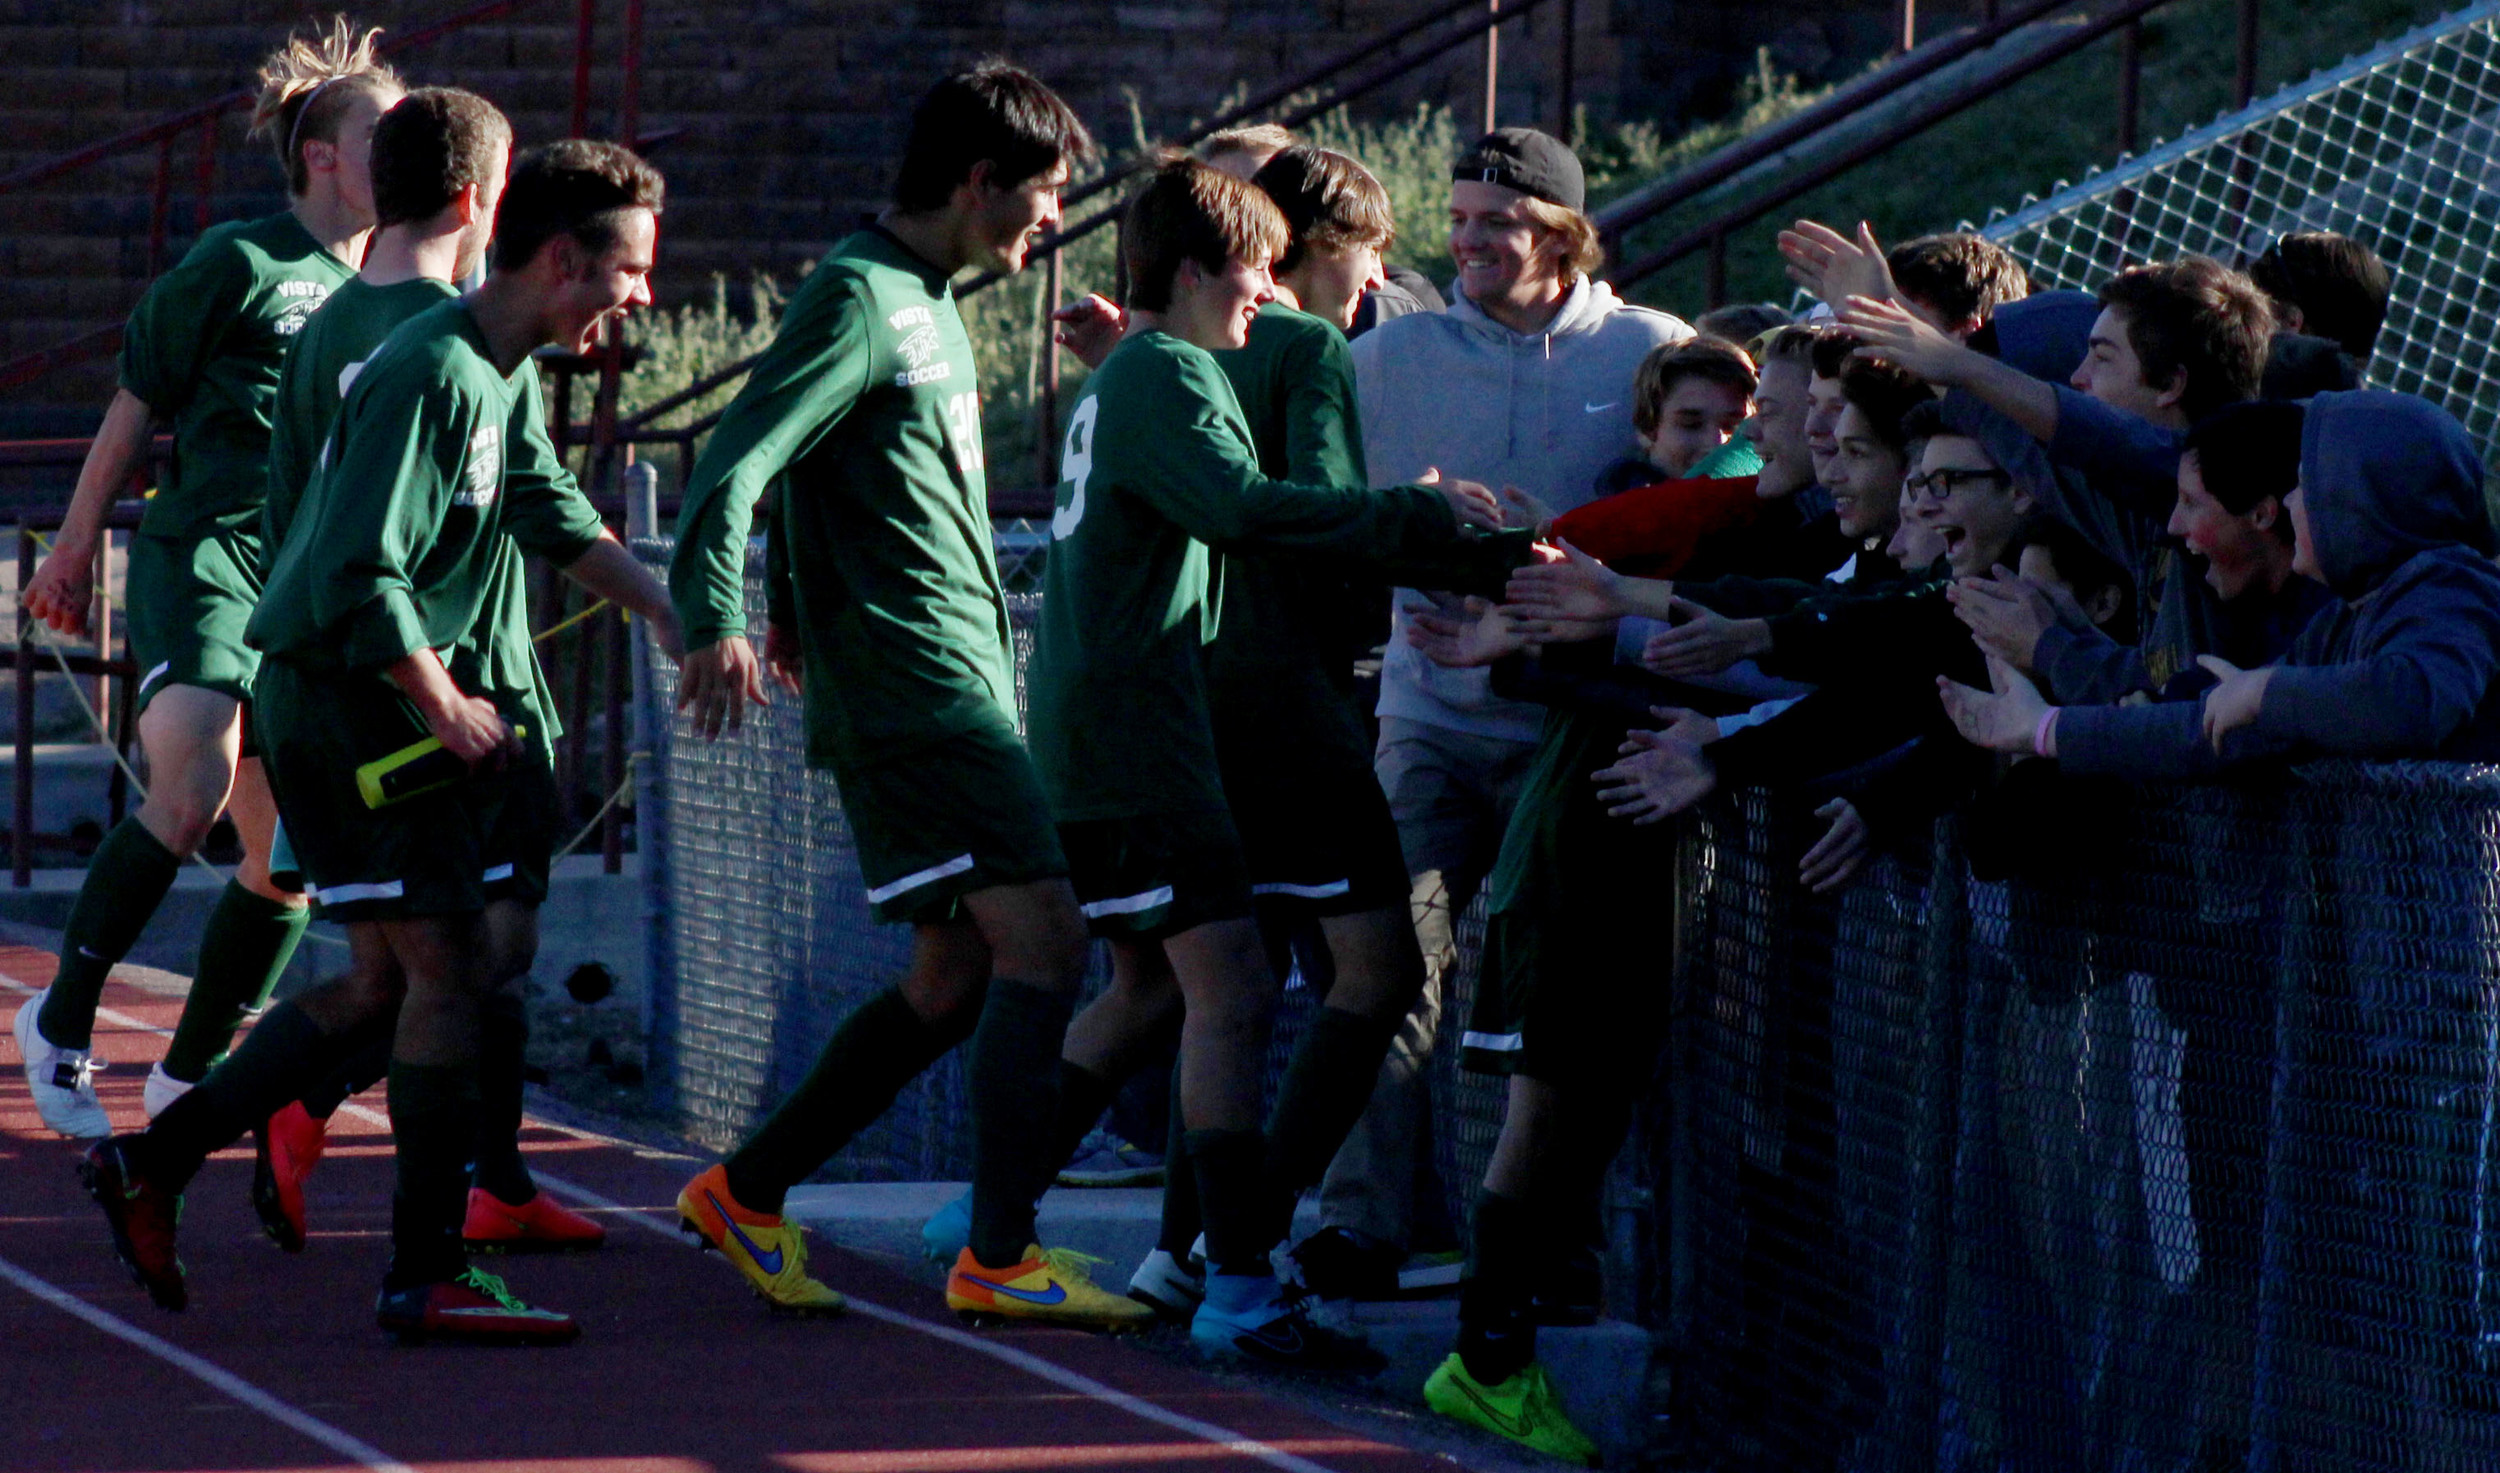 The varsity soccer team rushes the fence after defeating Arapahoe, 2-1, to advance to the final four.